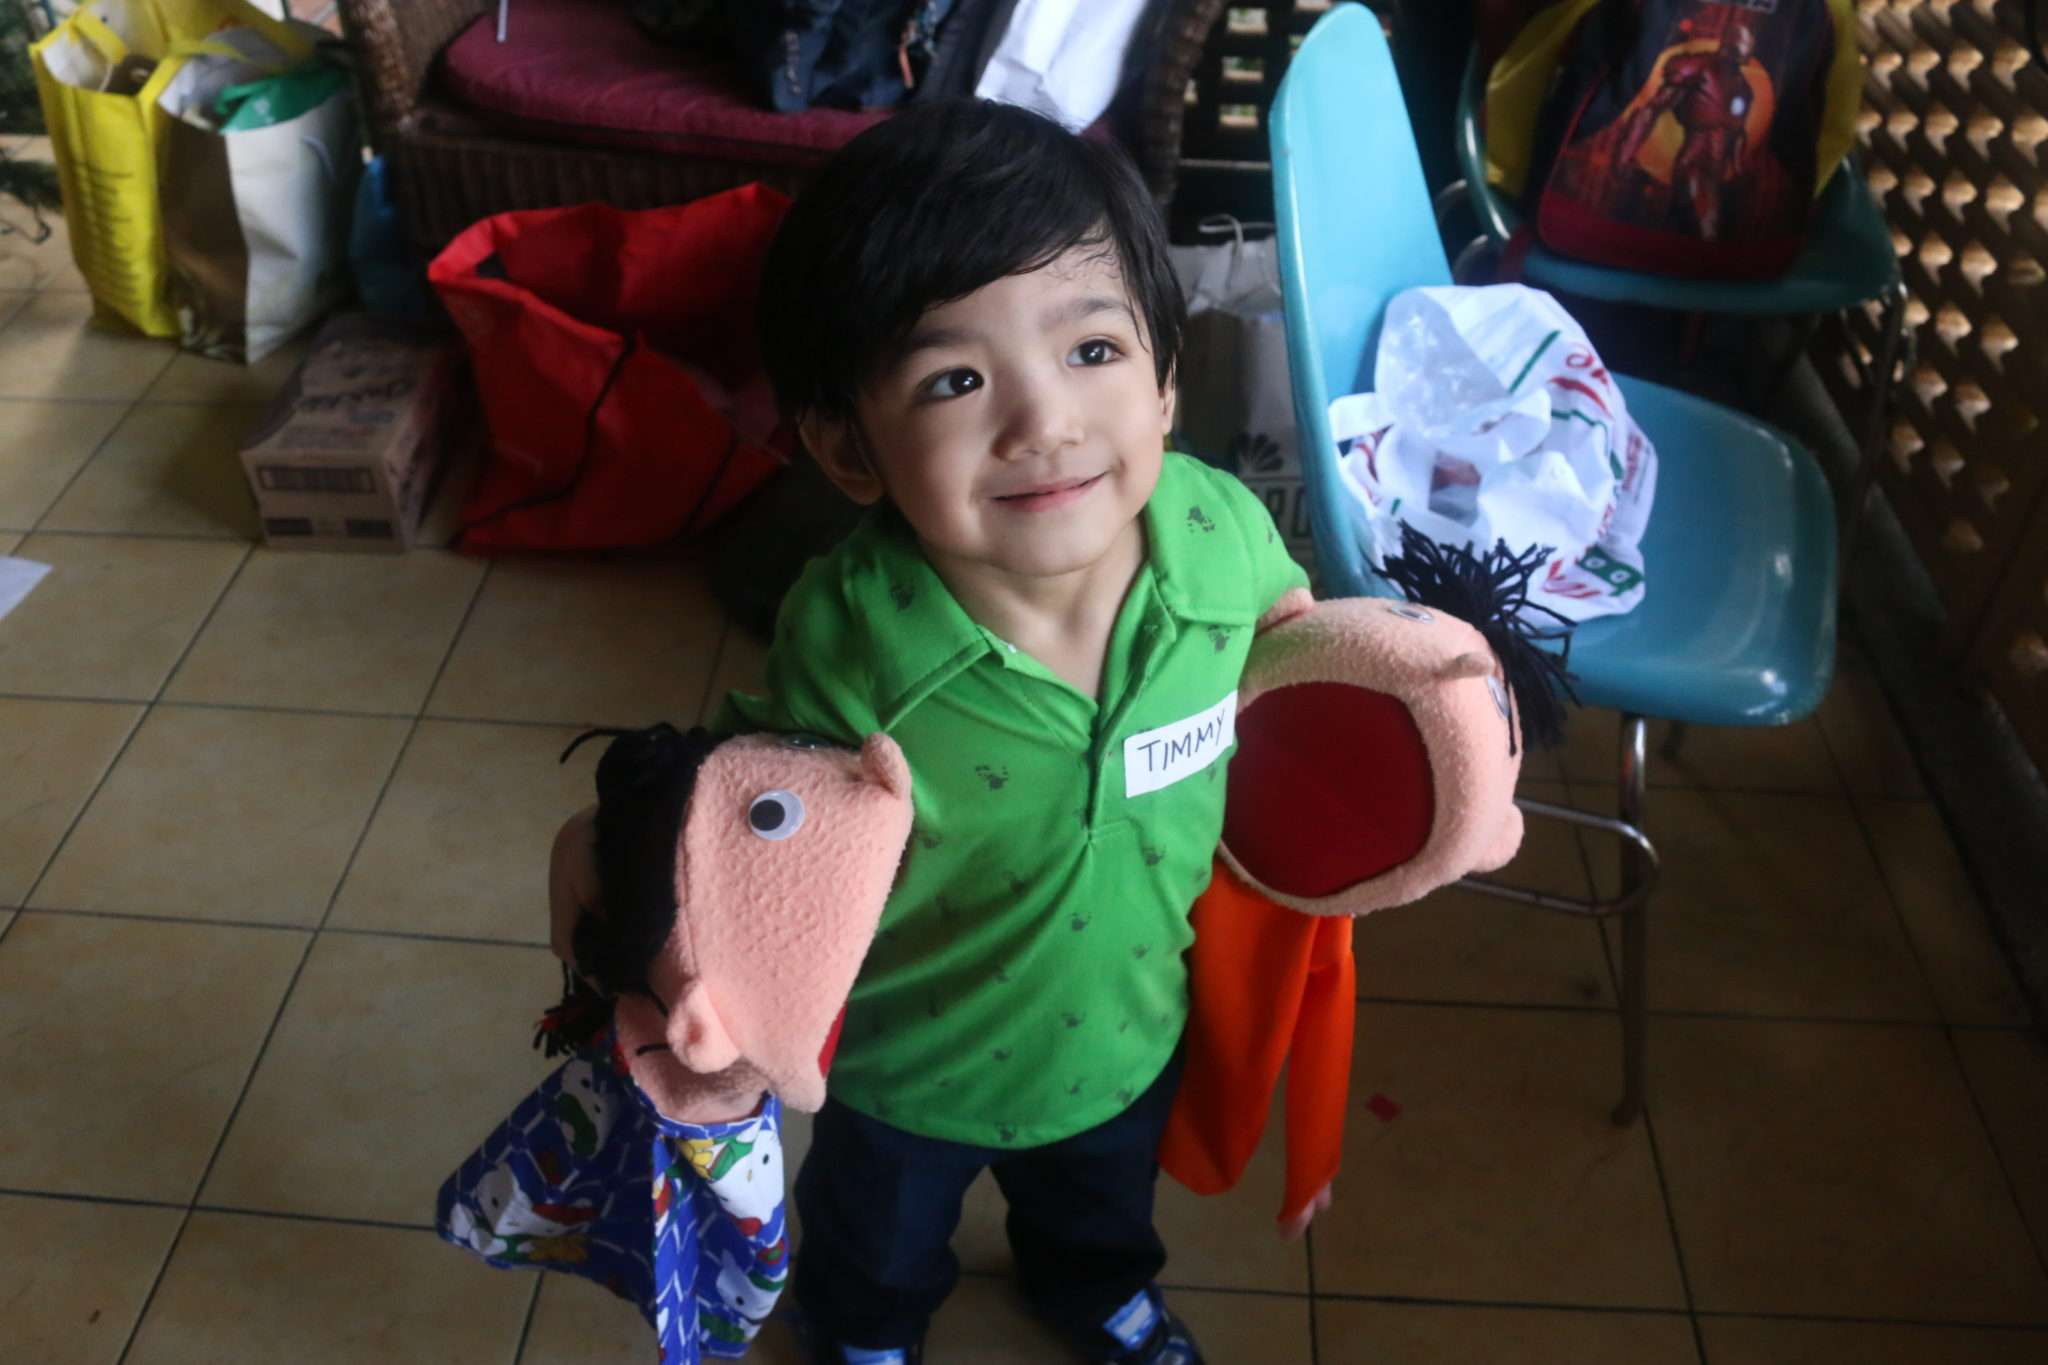 Our little boy is the official caretaker of the puppets Danny and Debbie :)